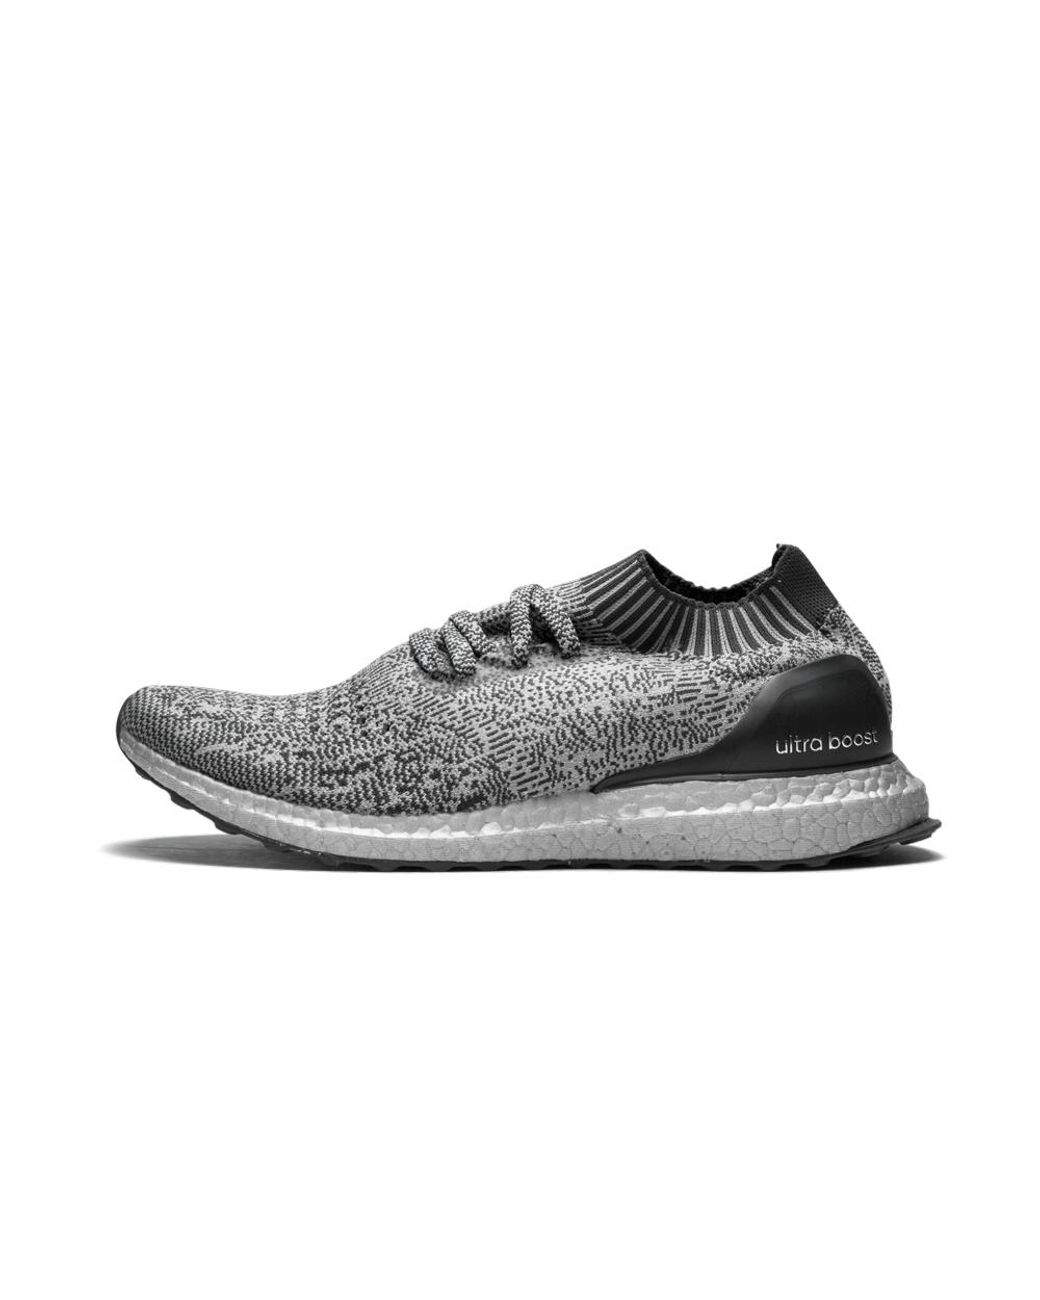 nike ultra boost uncaged